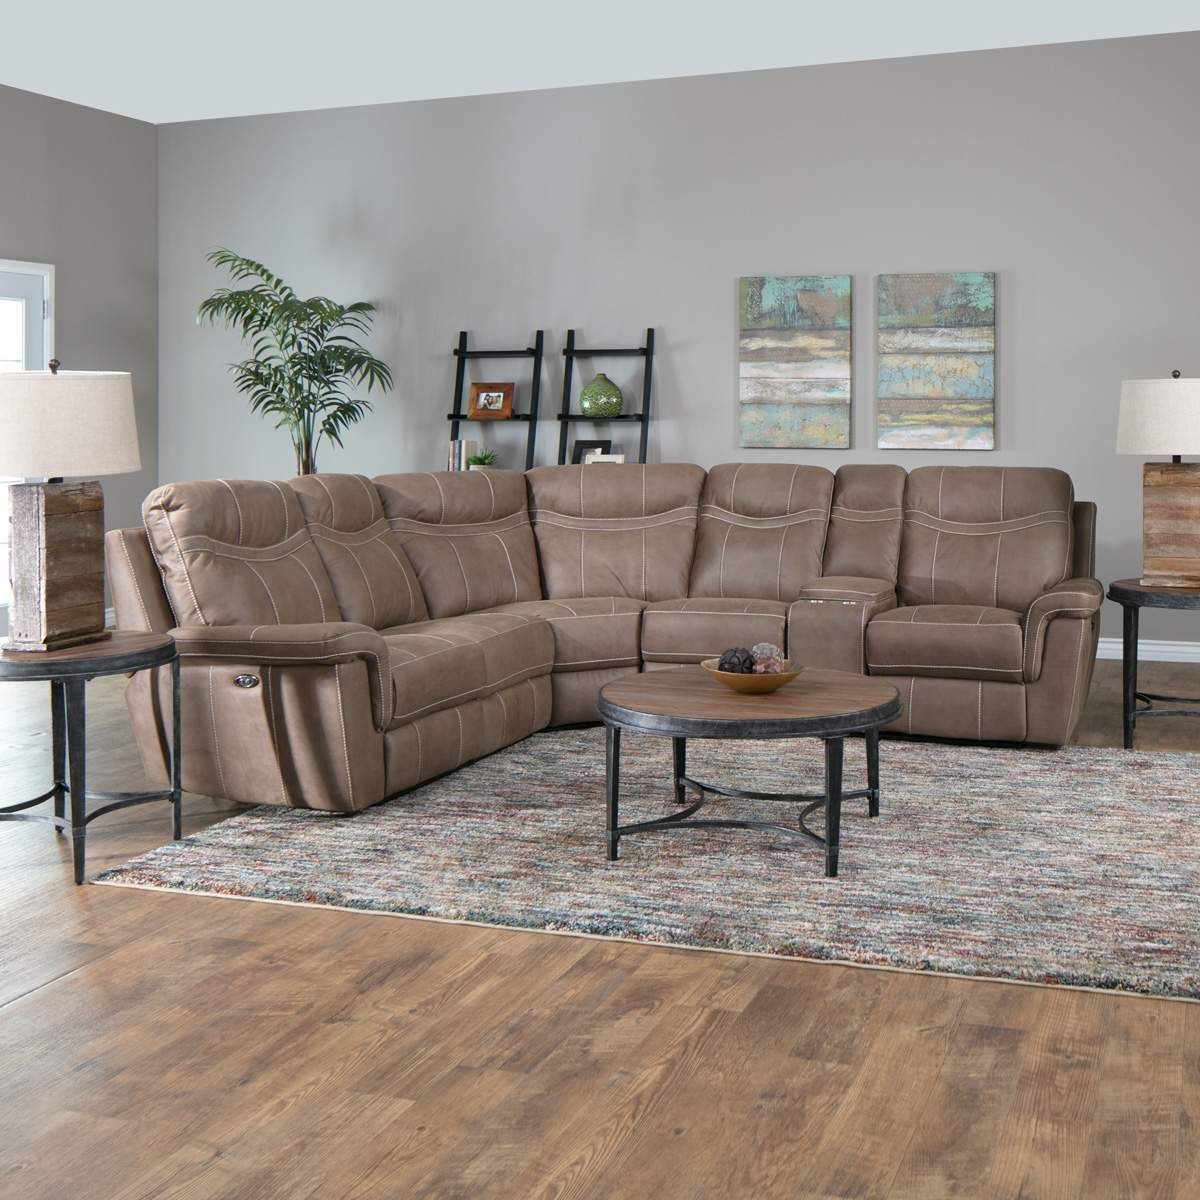 Touchdown The Chadwick Reclining Sectional Is The Winning Seating